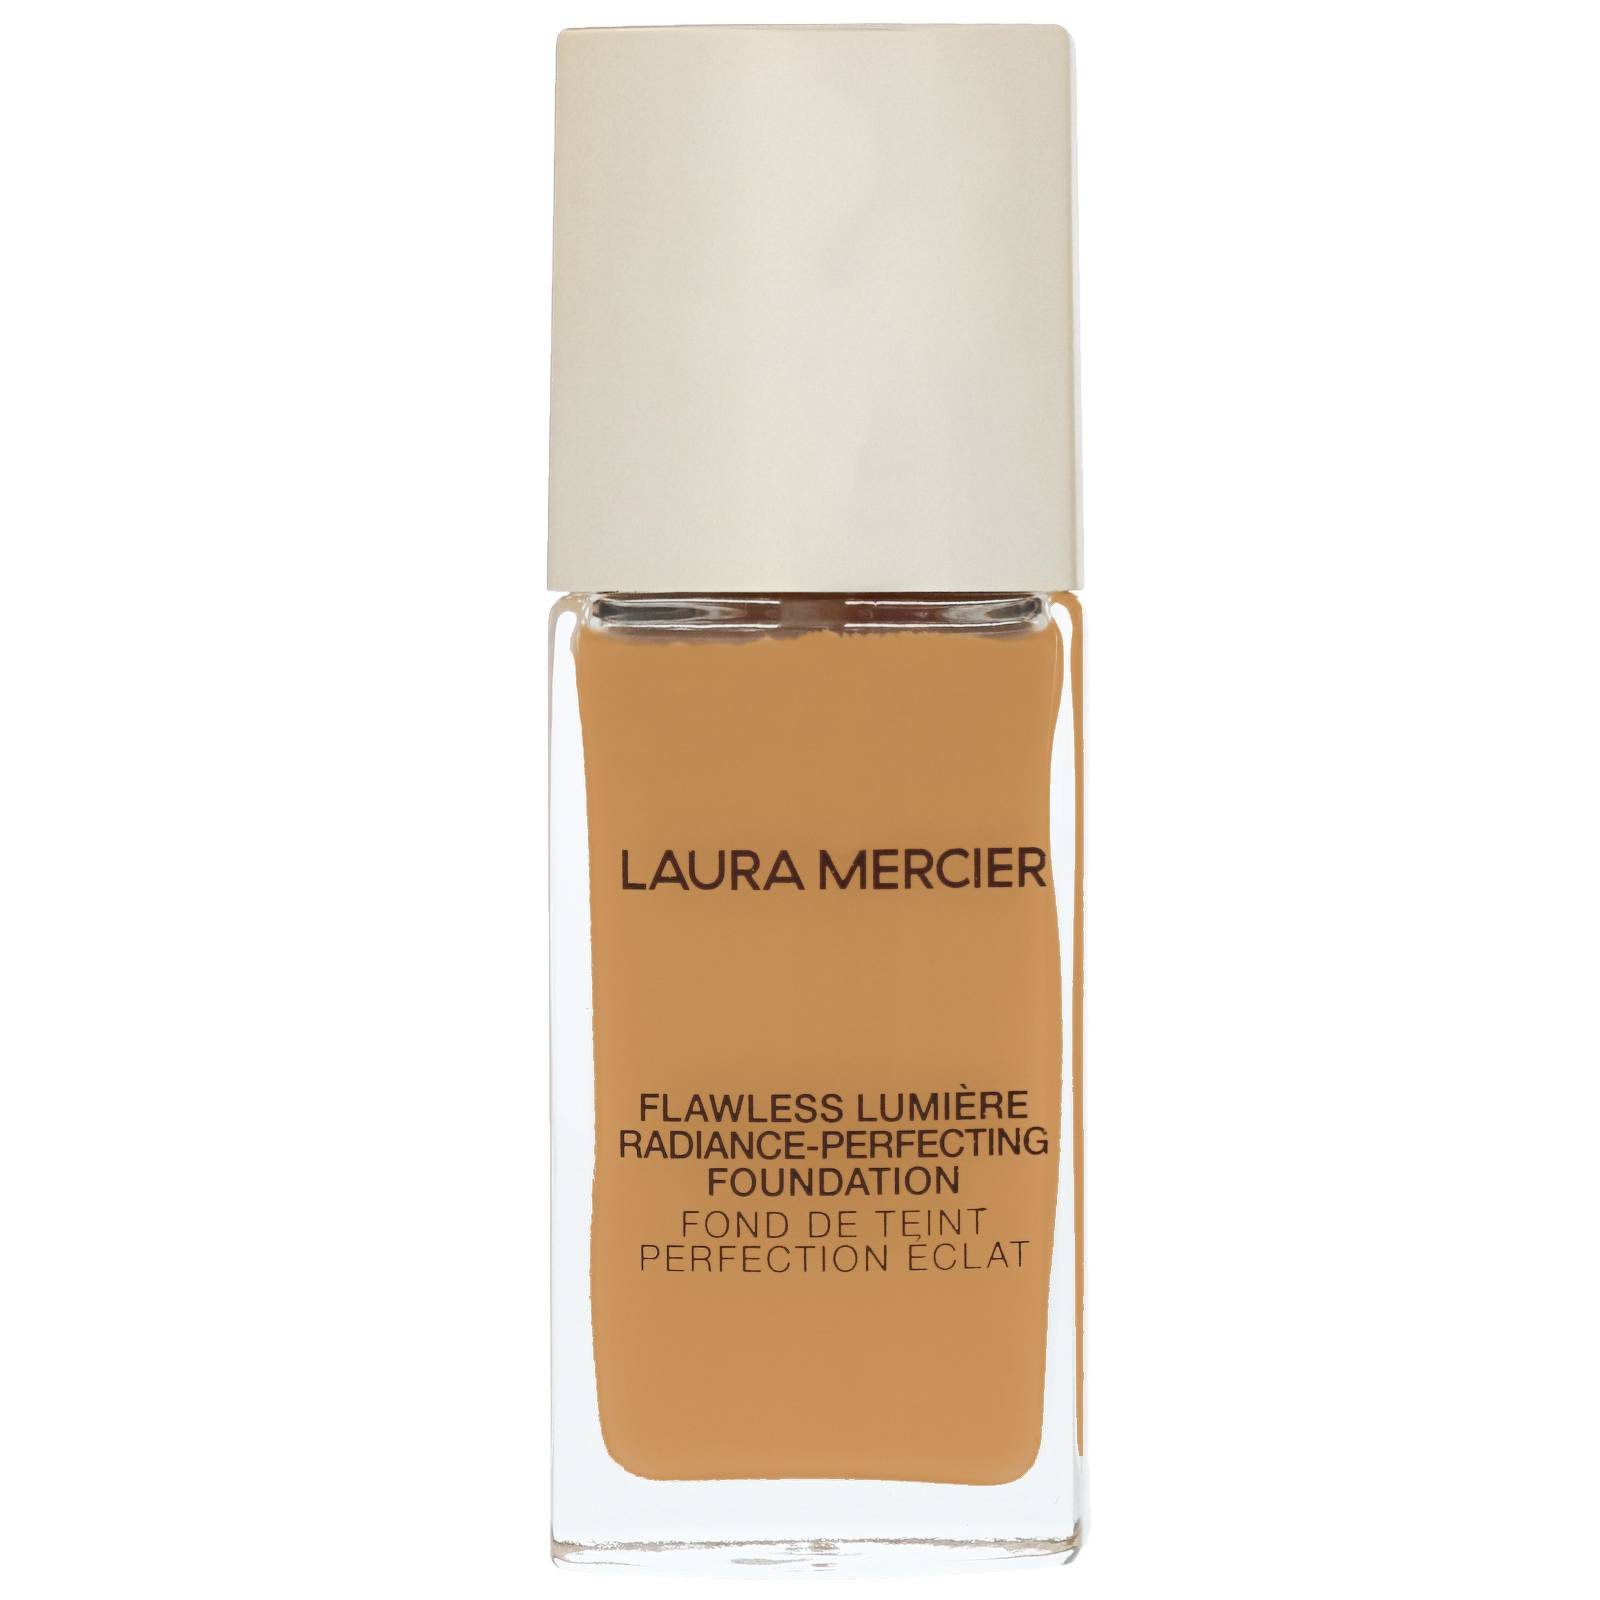 Laura Mercier - Flawless Lumiere Radiance-Perfecting Foundation 4W2 Chai 30ml for Women